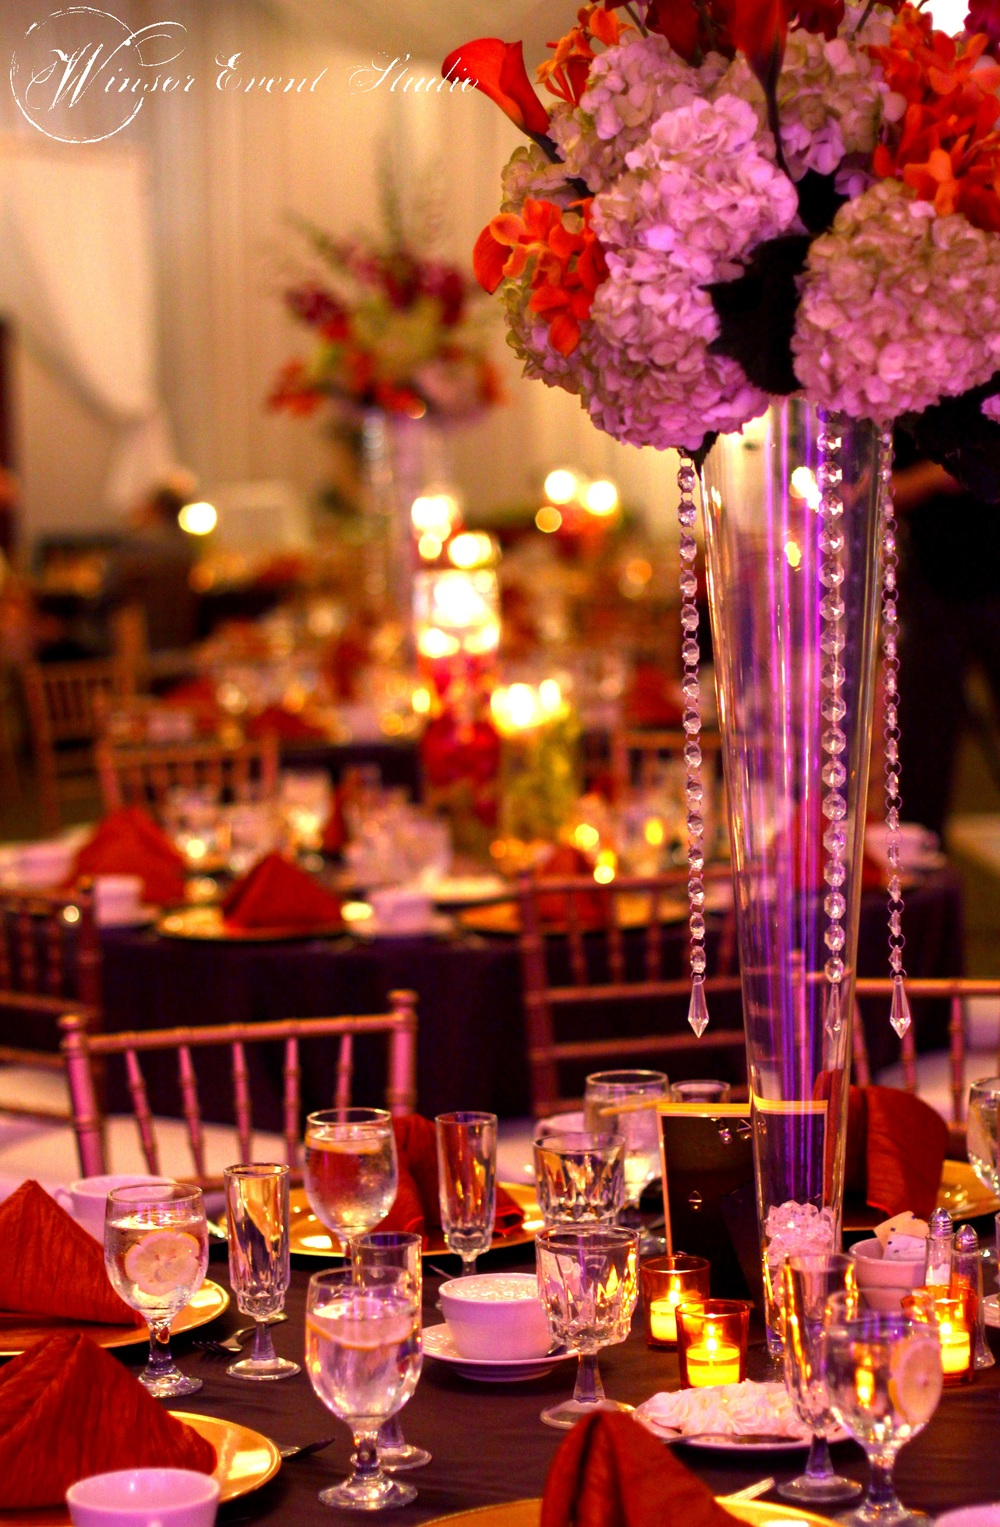 winsor event studio tall centerpiece orchid wedding